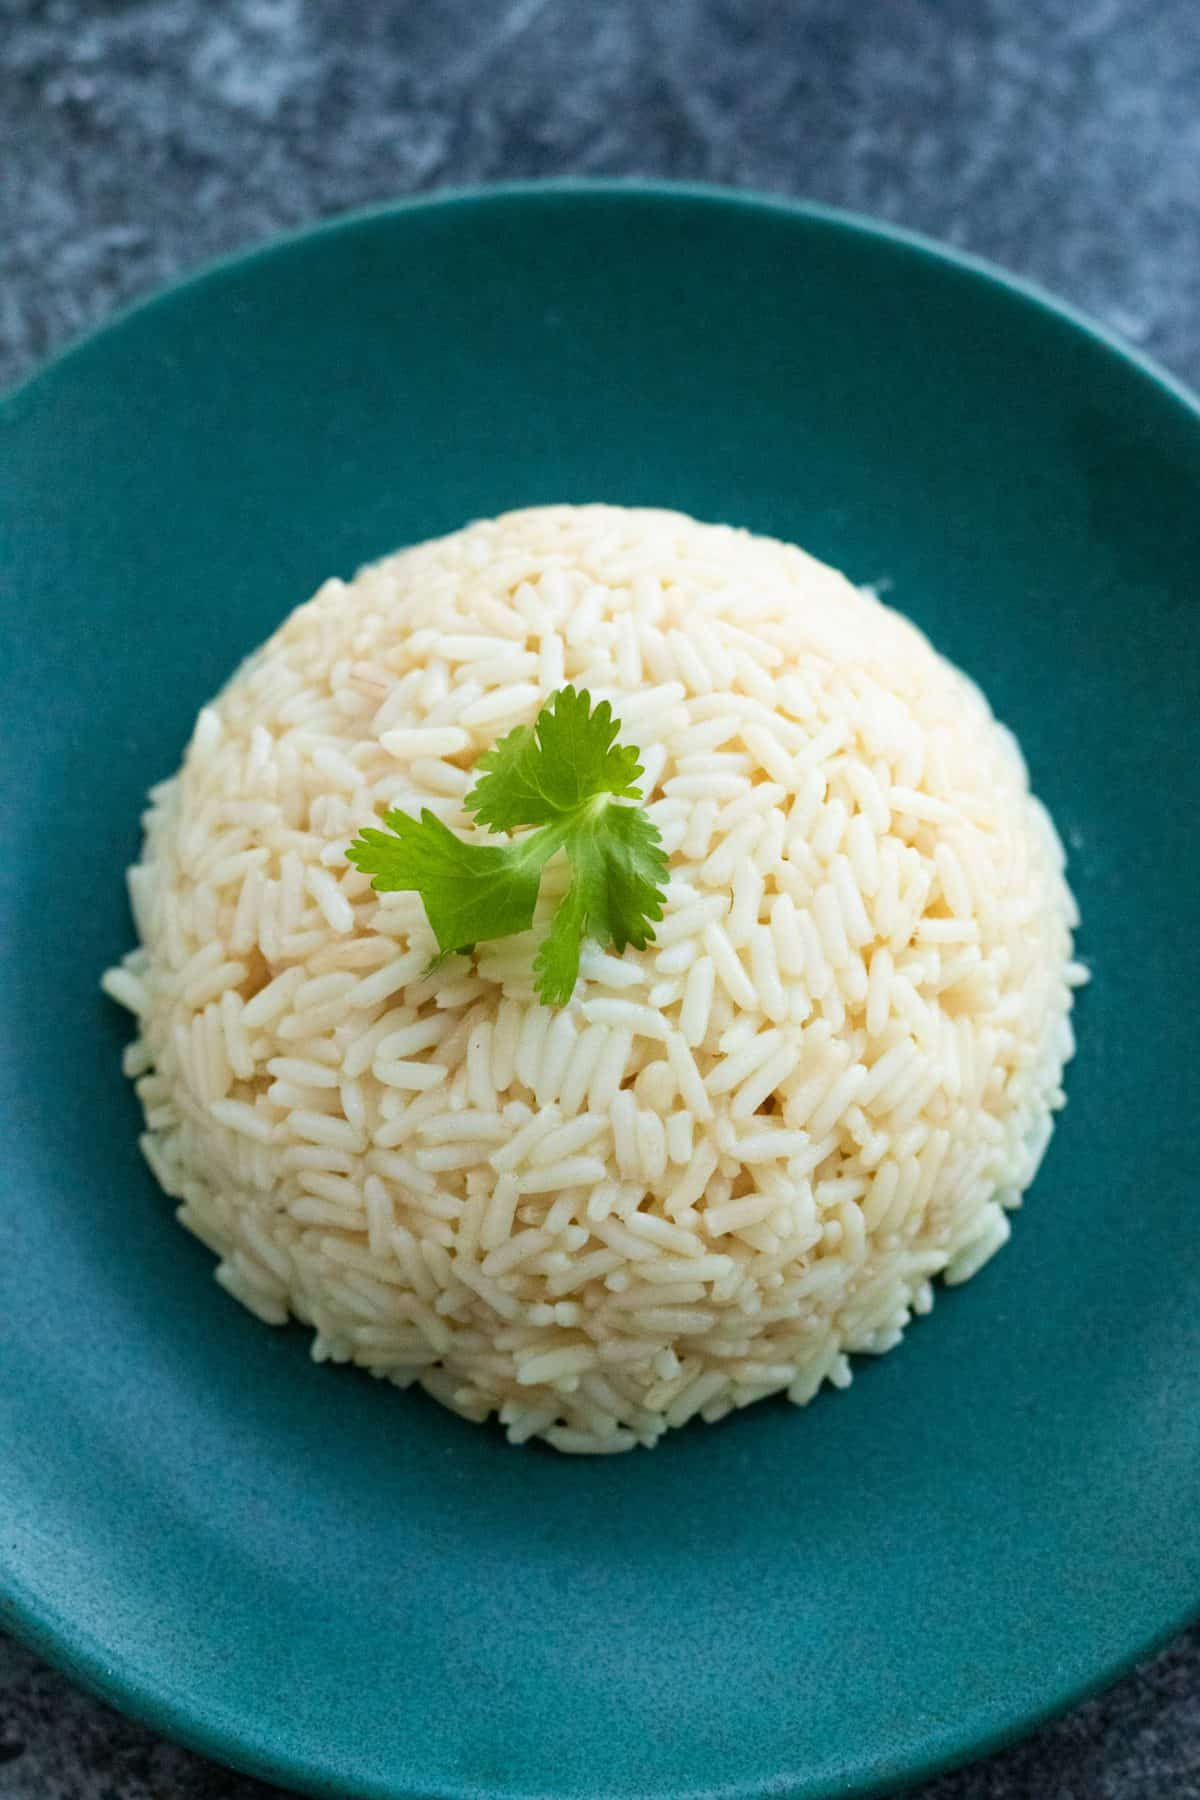 top down view of a mound of rice topped with parsley